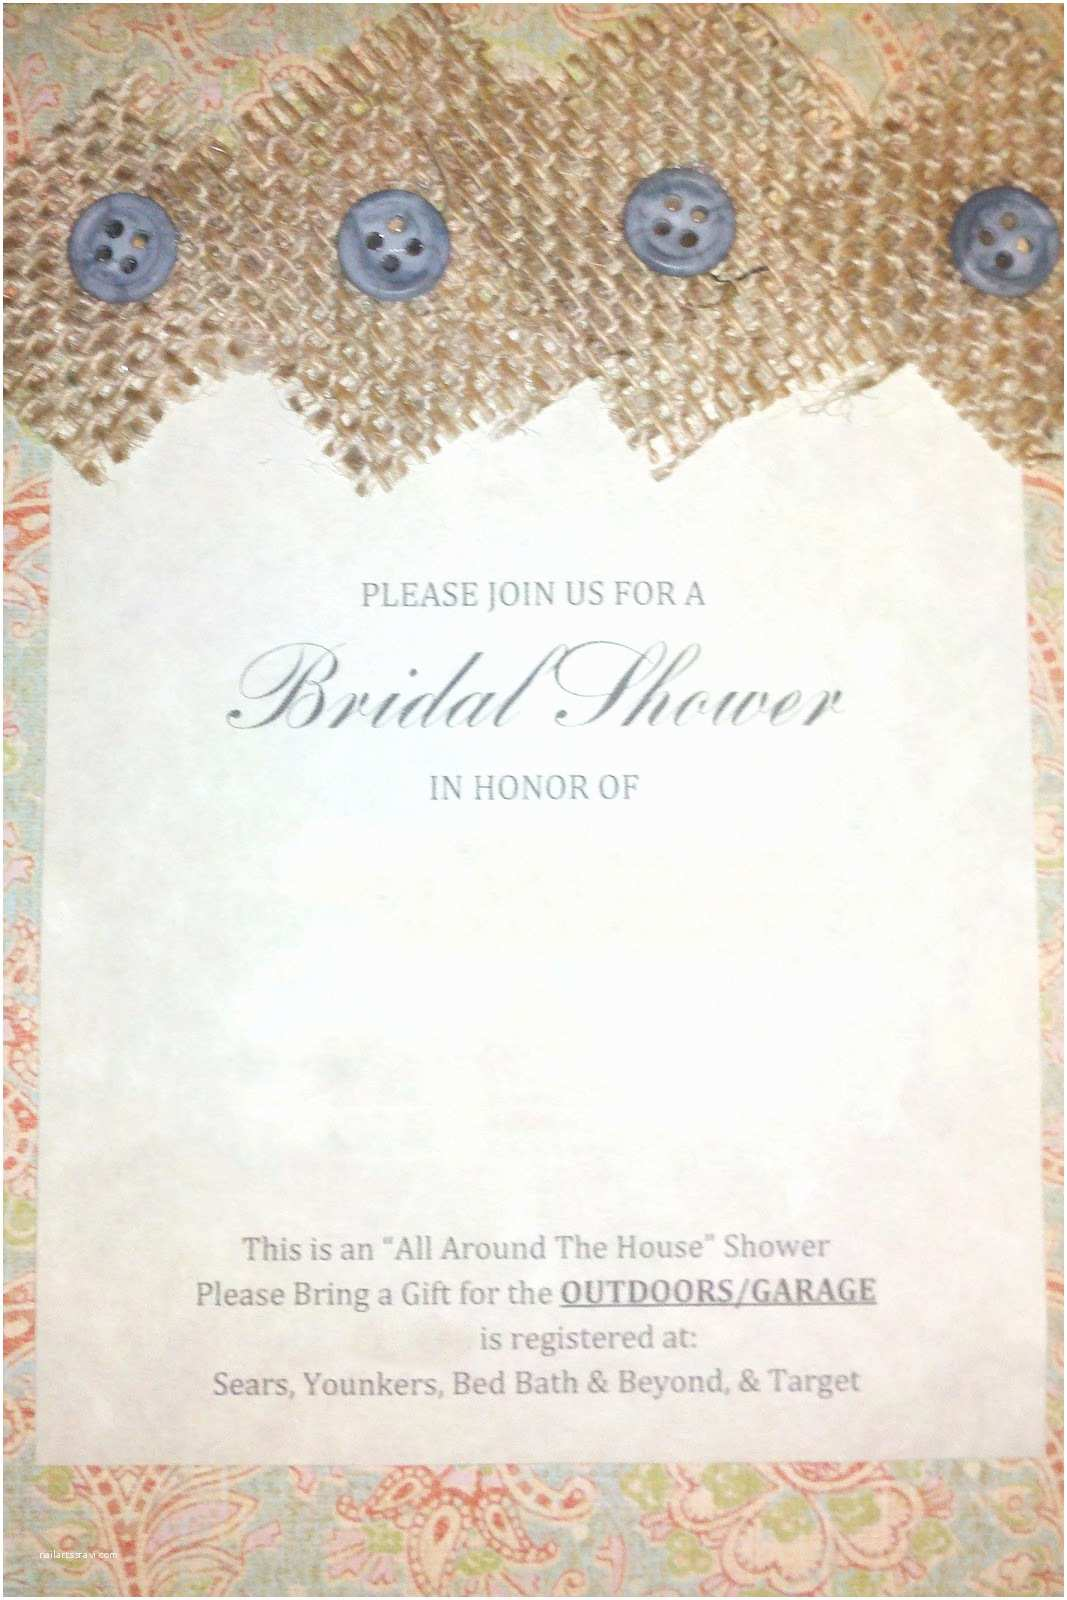 Inexpensive Bridal Shower Invitations Chronicles Of A Frugal Gardener Inexpensive and Unique